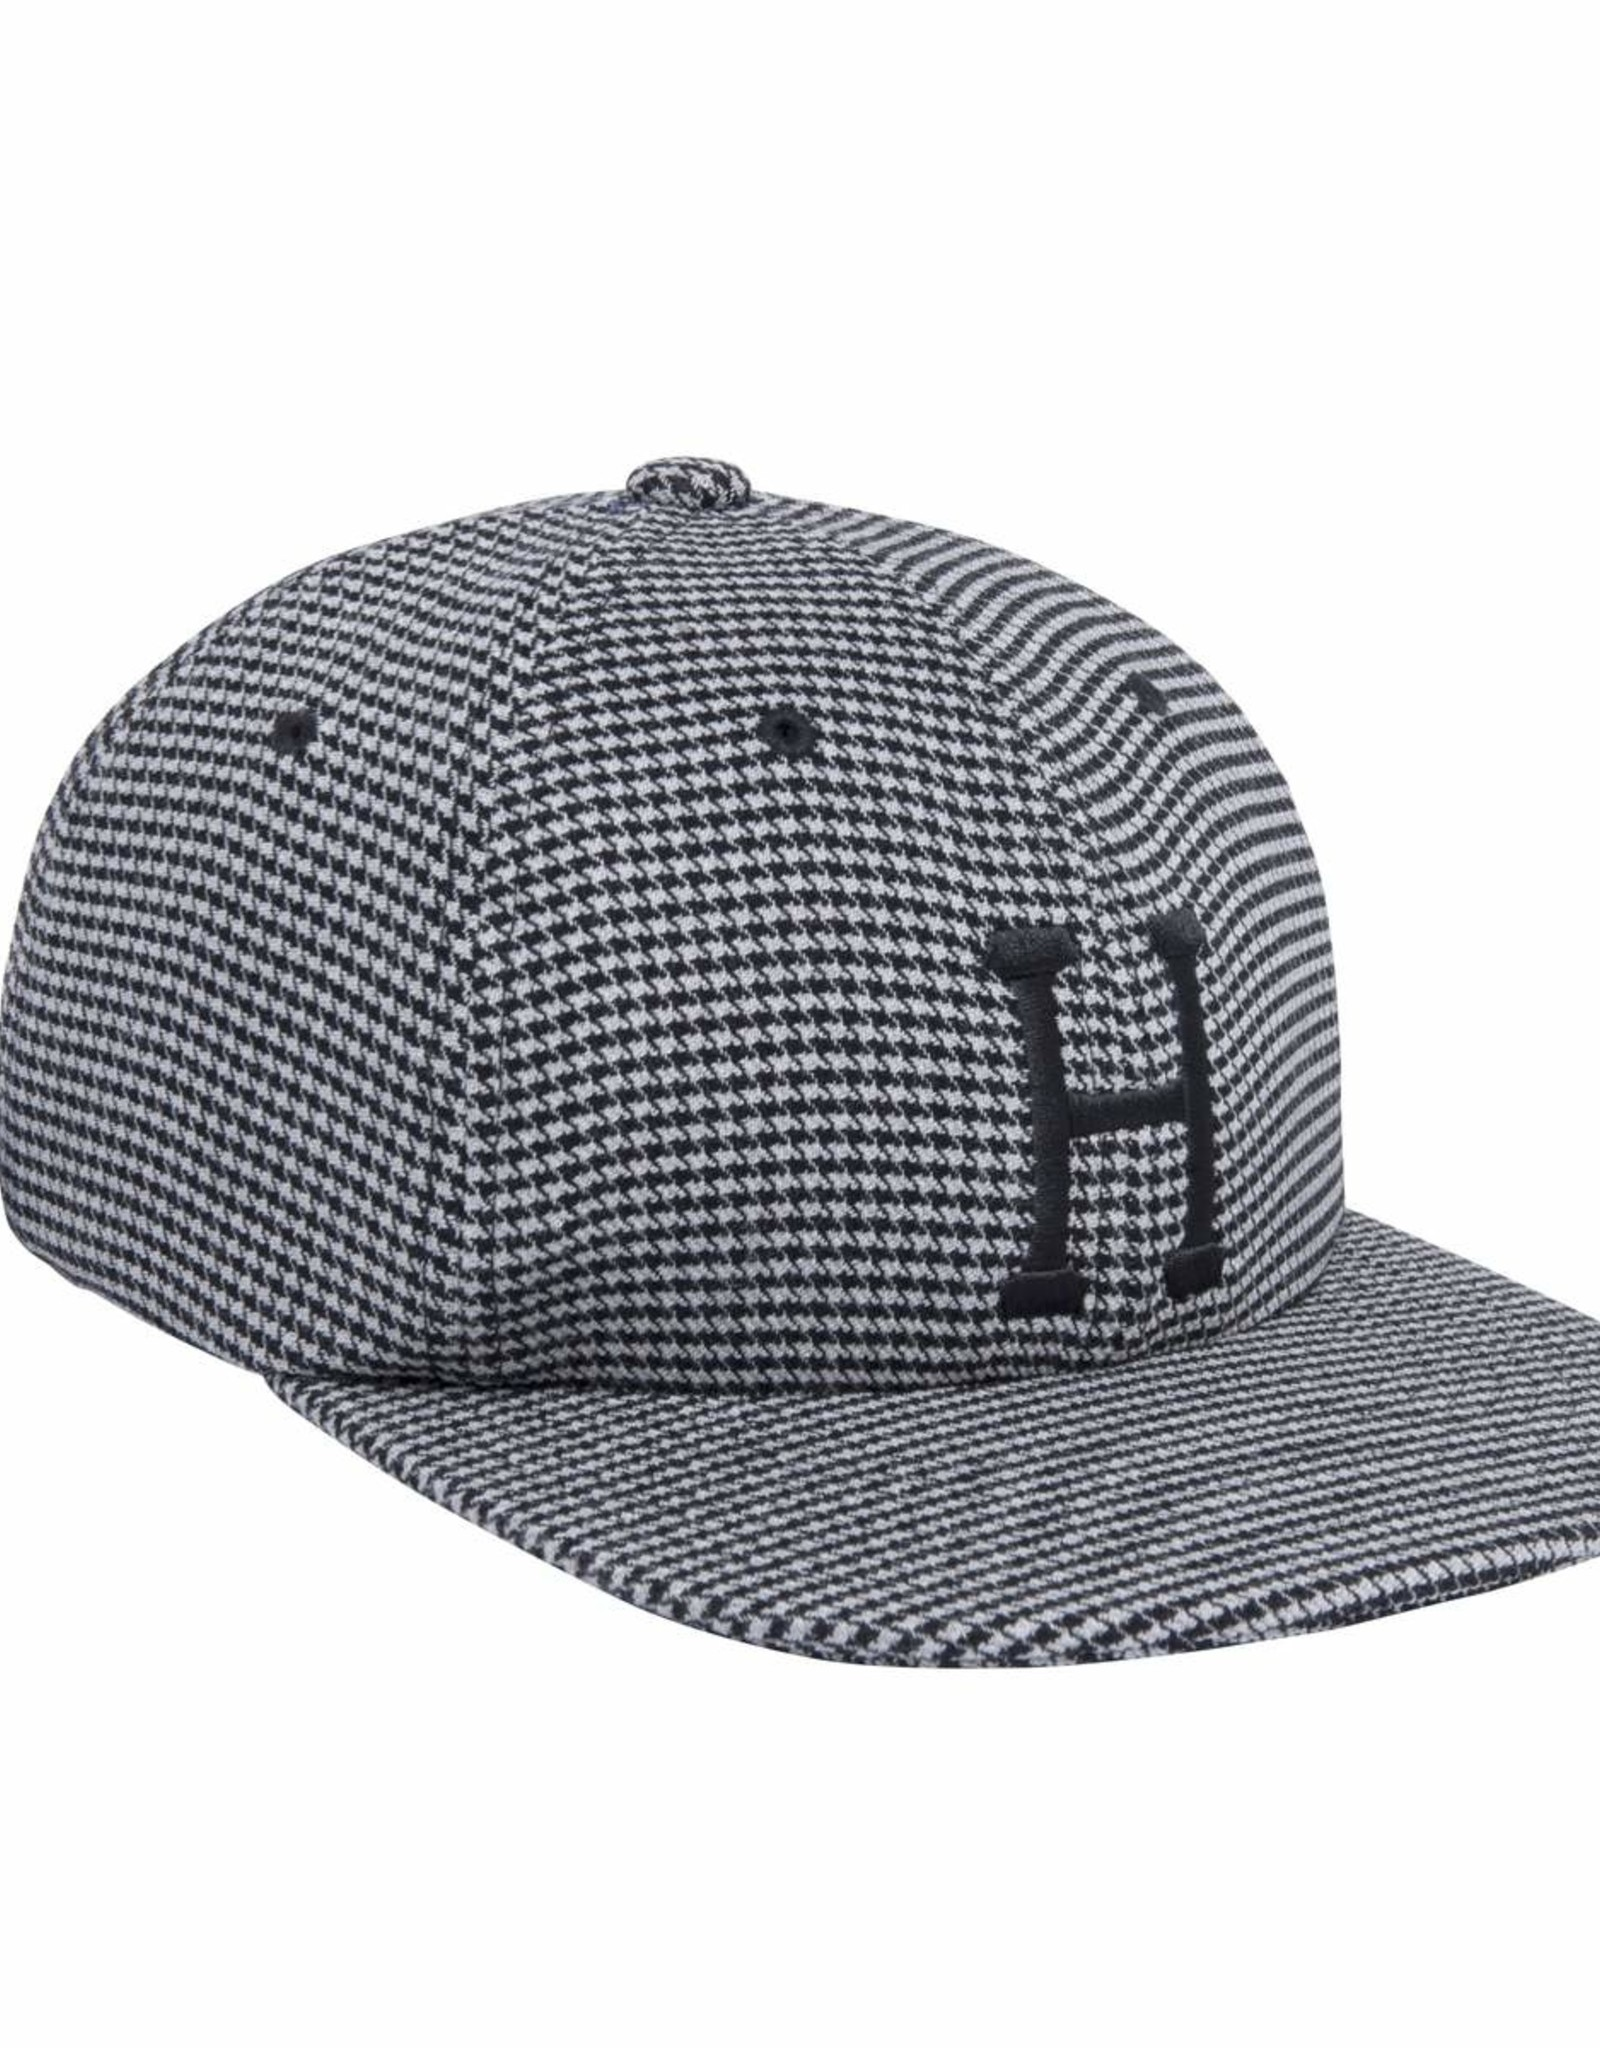 HUF CLASSIC H HOUNDSTOOTH 6 PANEL - BLACK